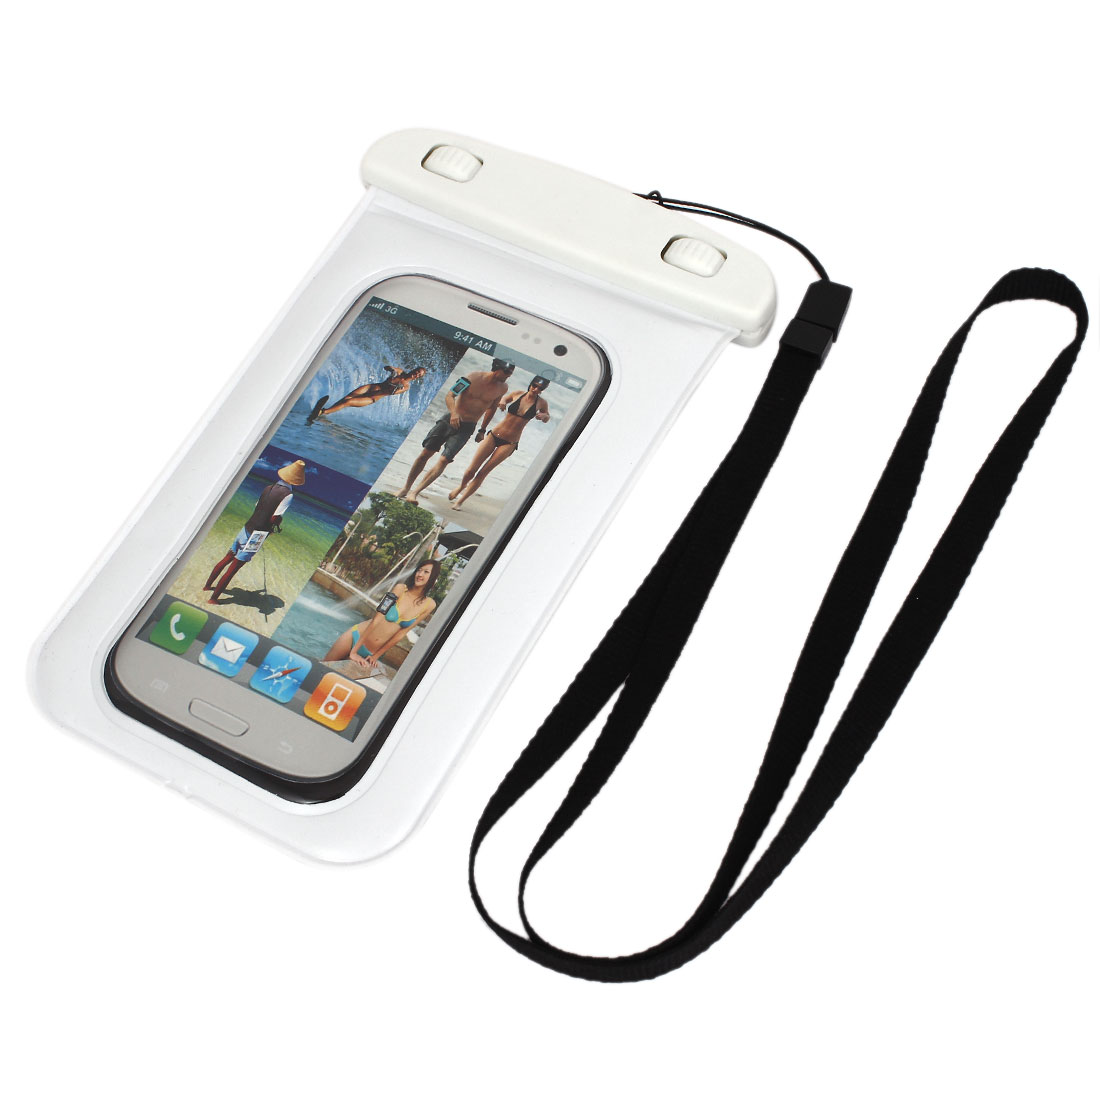 Waterproof Bag Holder Pouch White for iPhone 5C/5S w Neck Strap